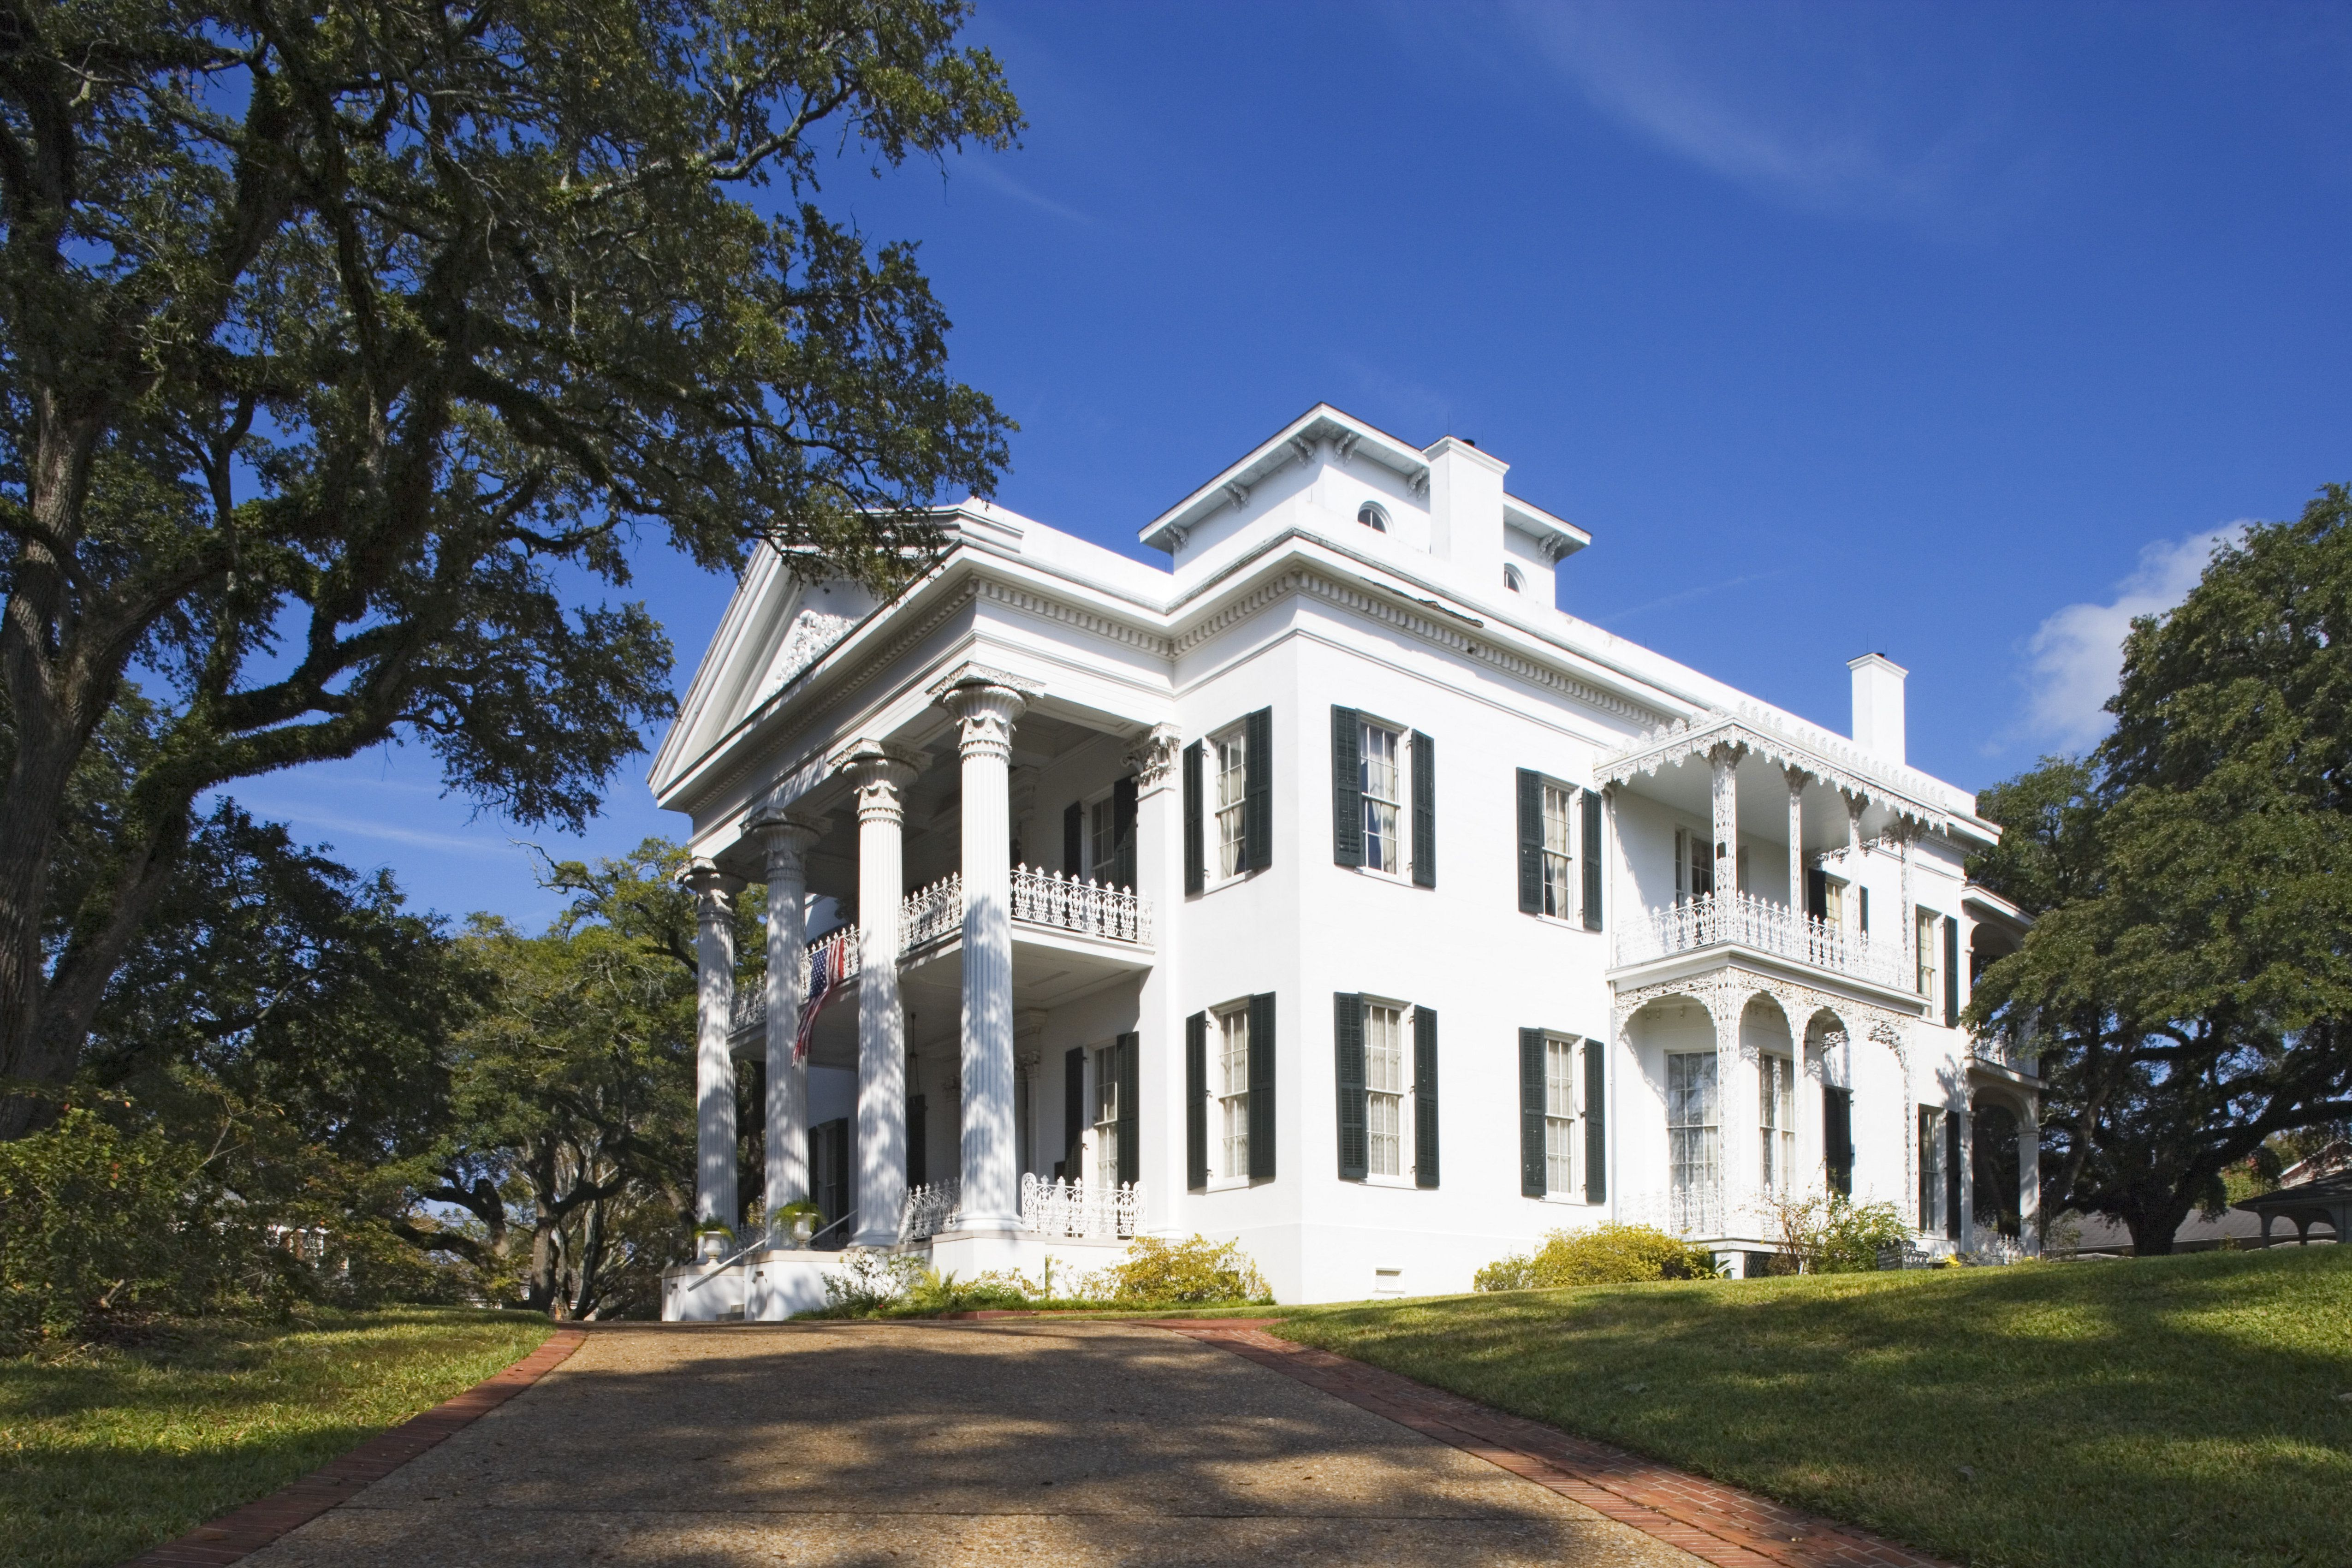 Large white antebellum plantation house, pillars holding up pediment and two porches